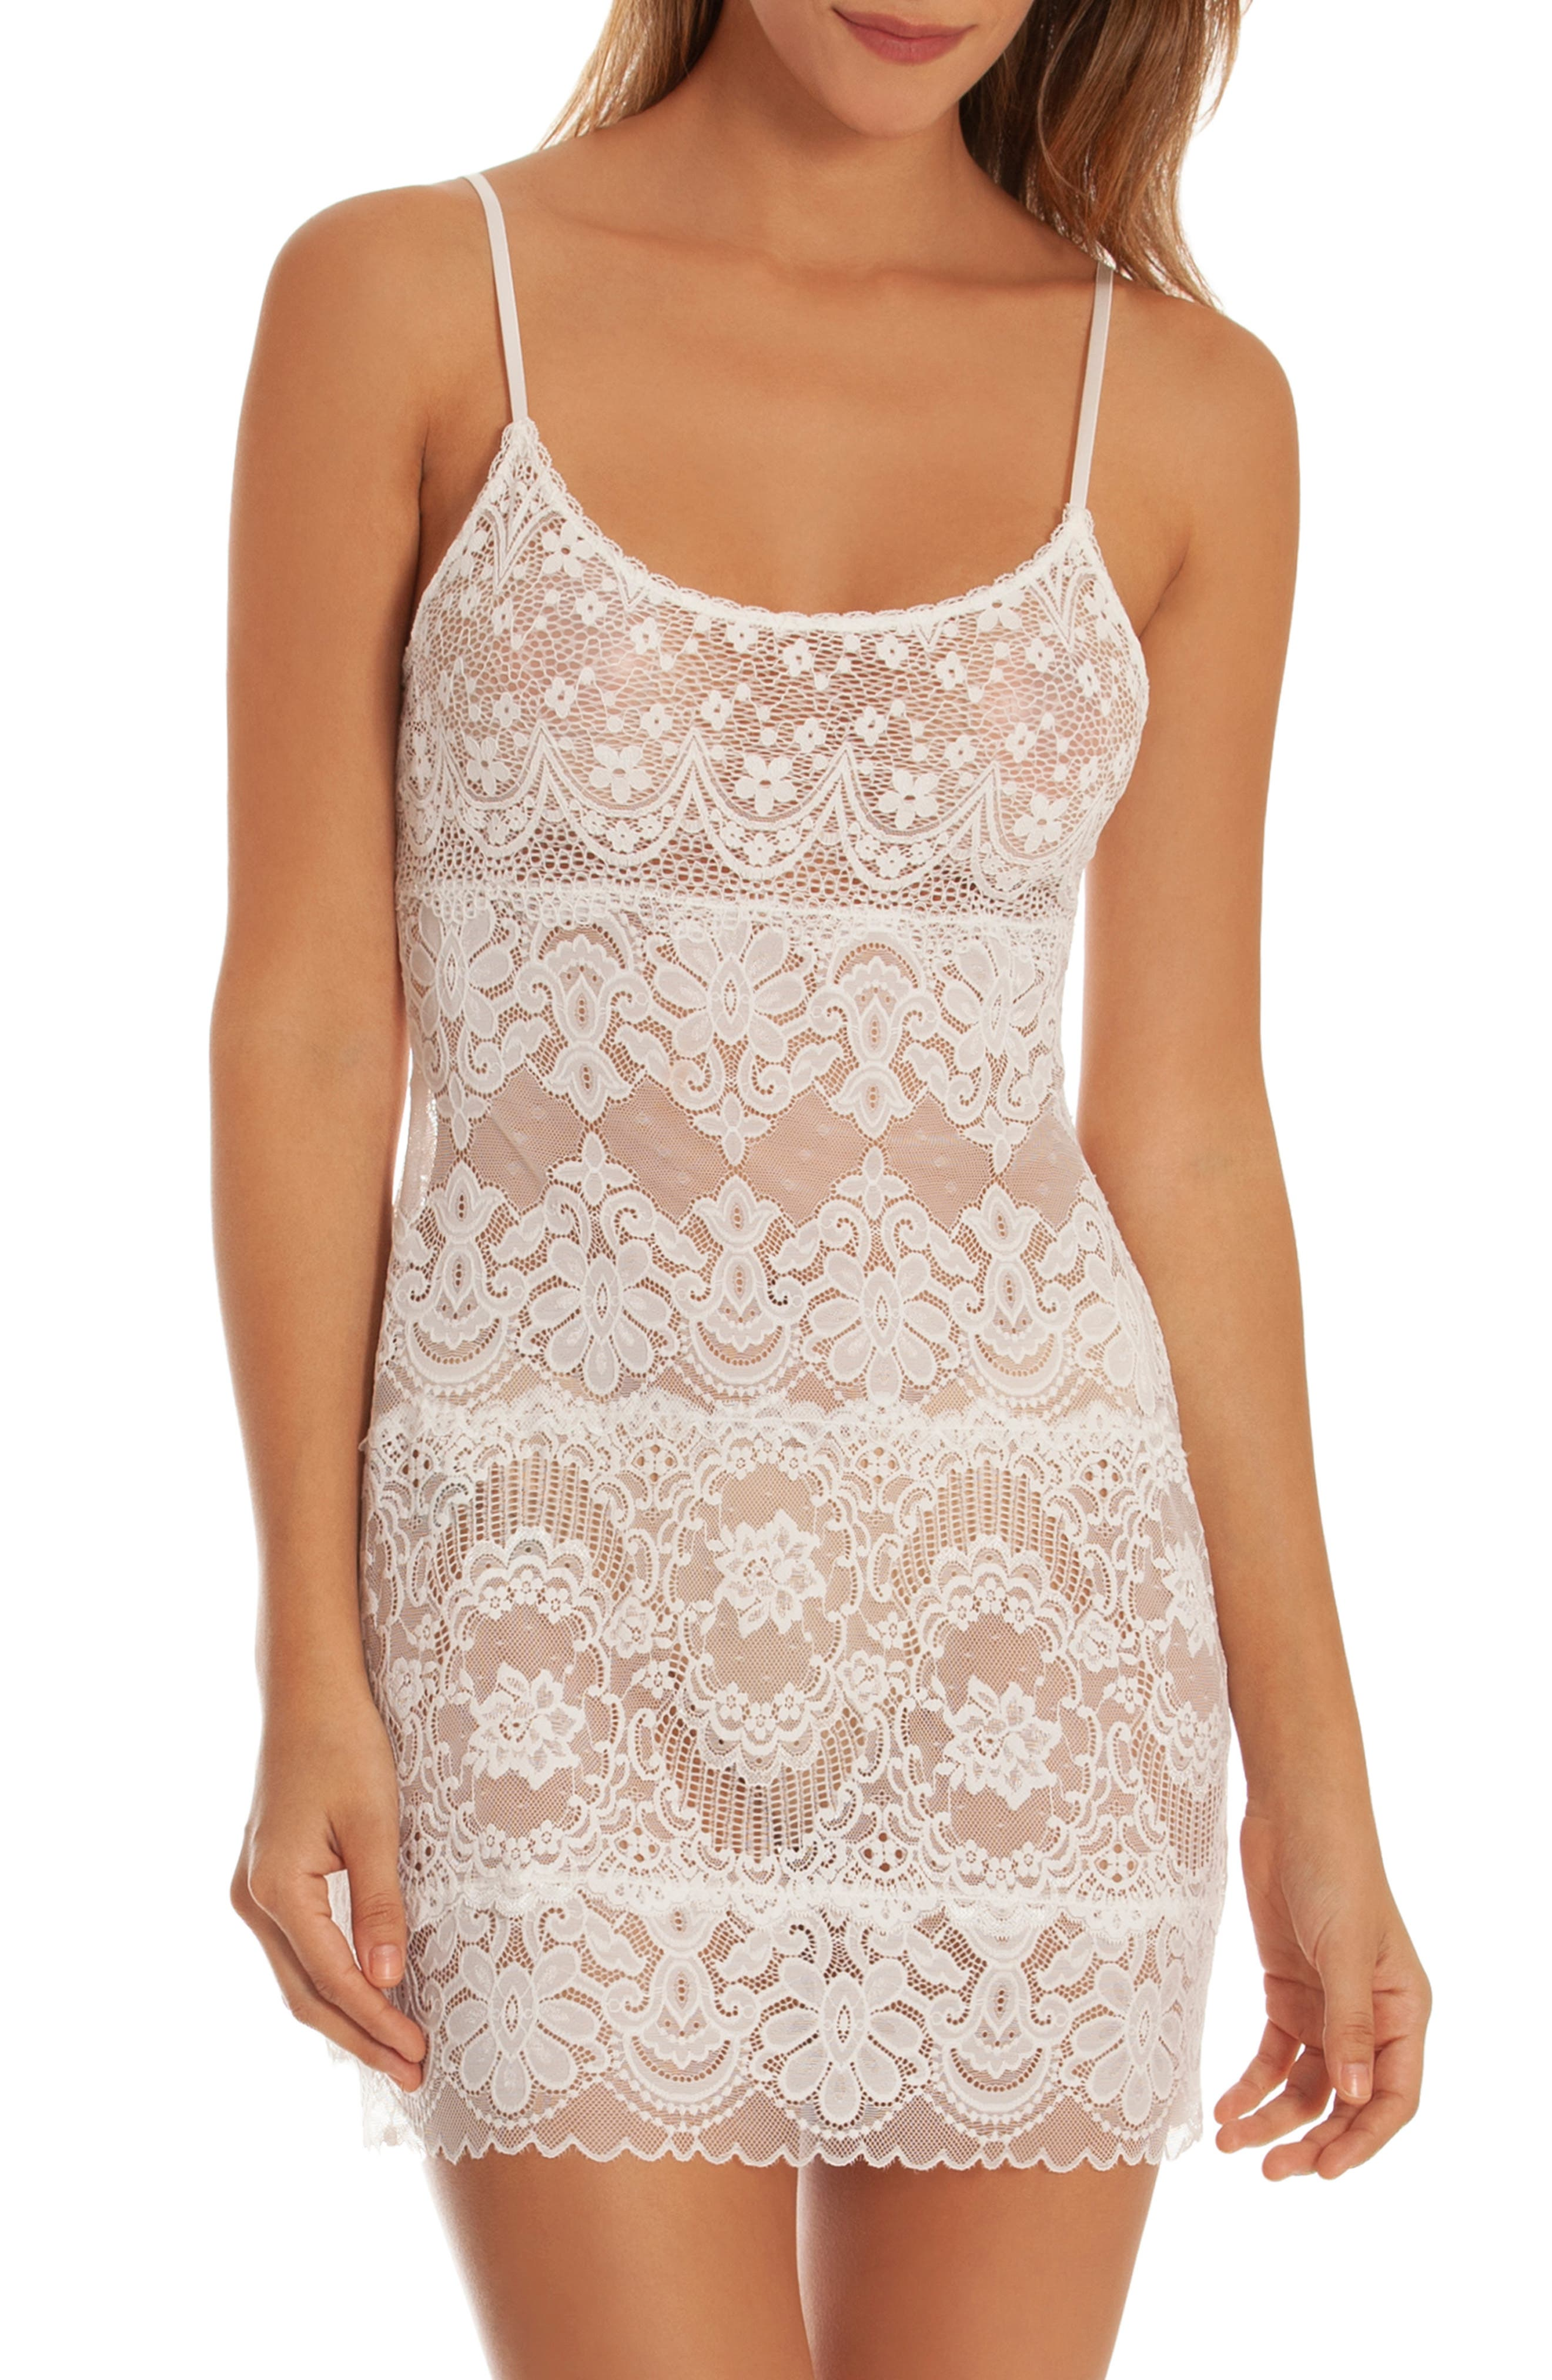 IN BLOOM BY JONQUIL Lace Chemise, Main, color, IVORY